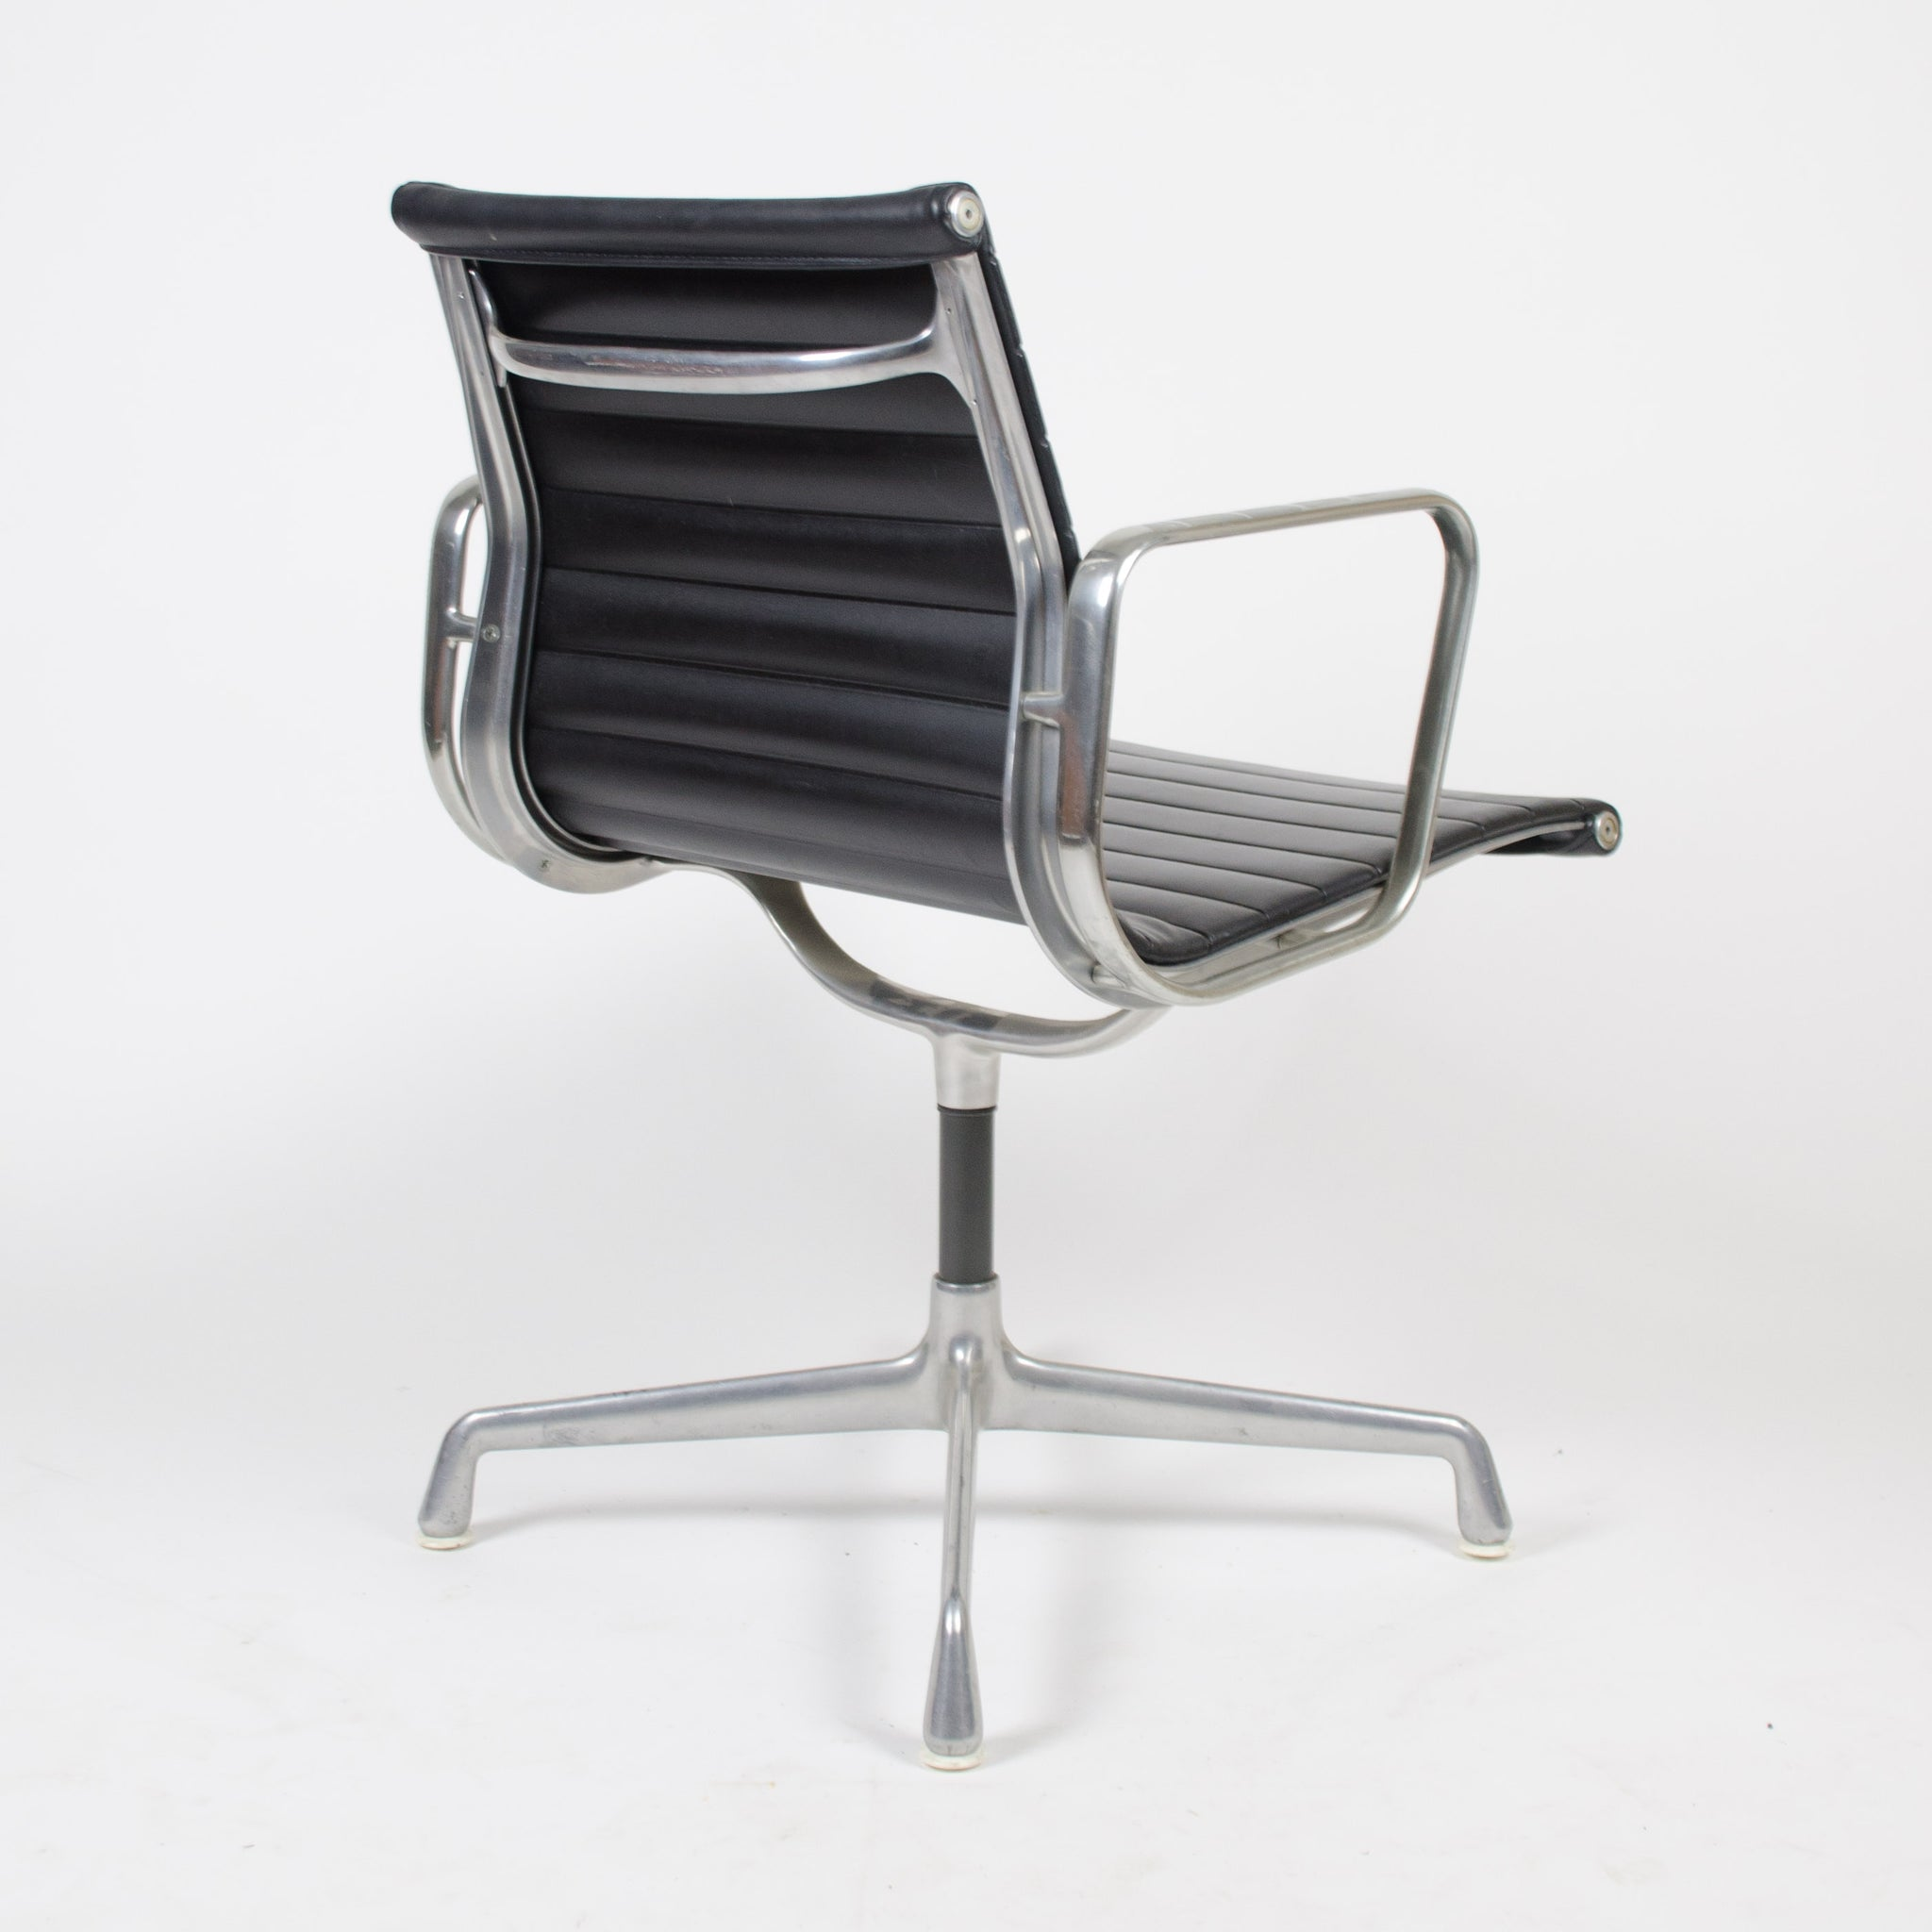 SOLD Herman Miller Eames Aluminum Group Executive Task Chairs Black